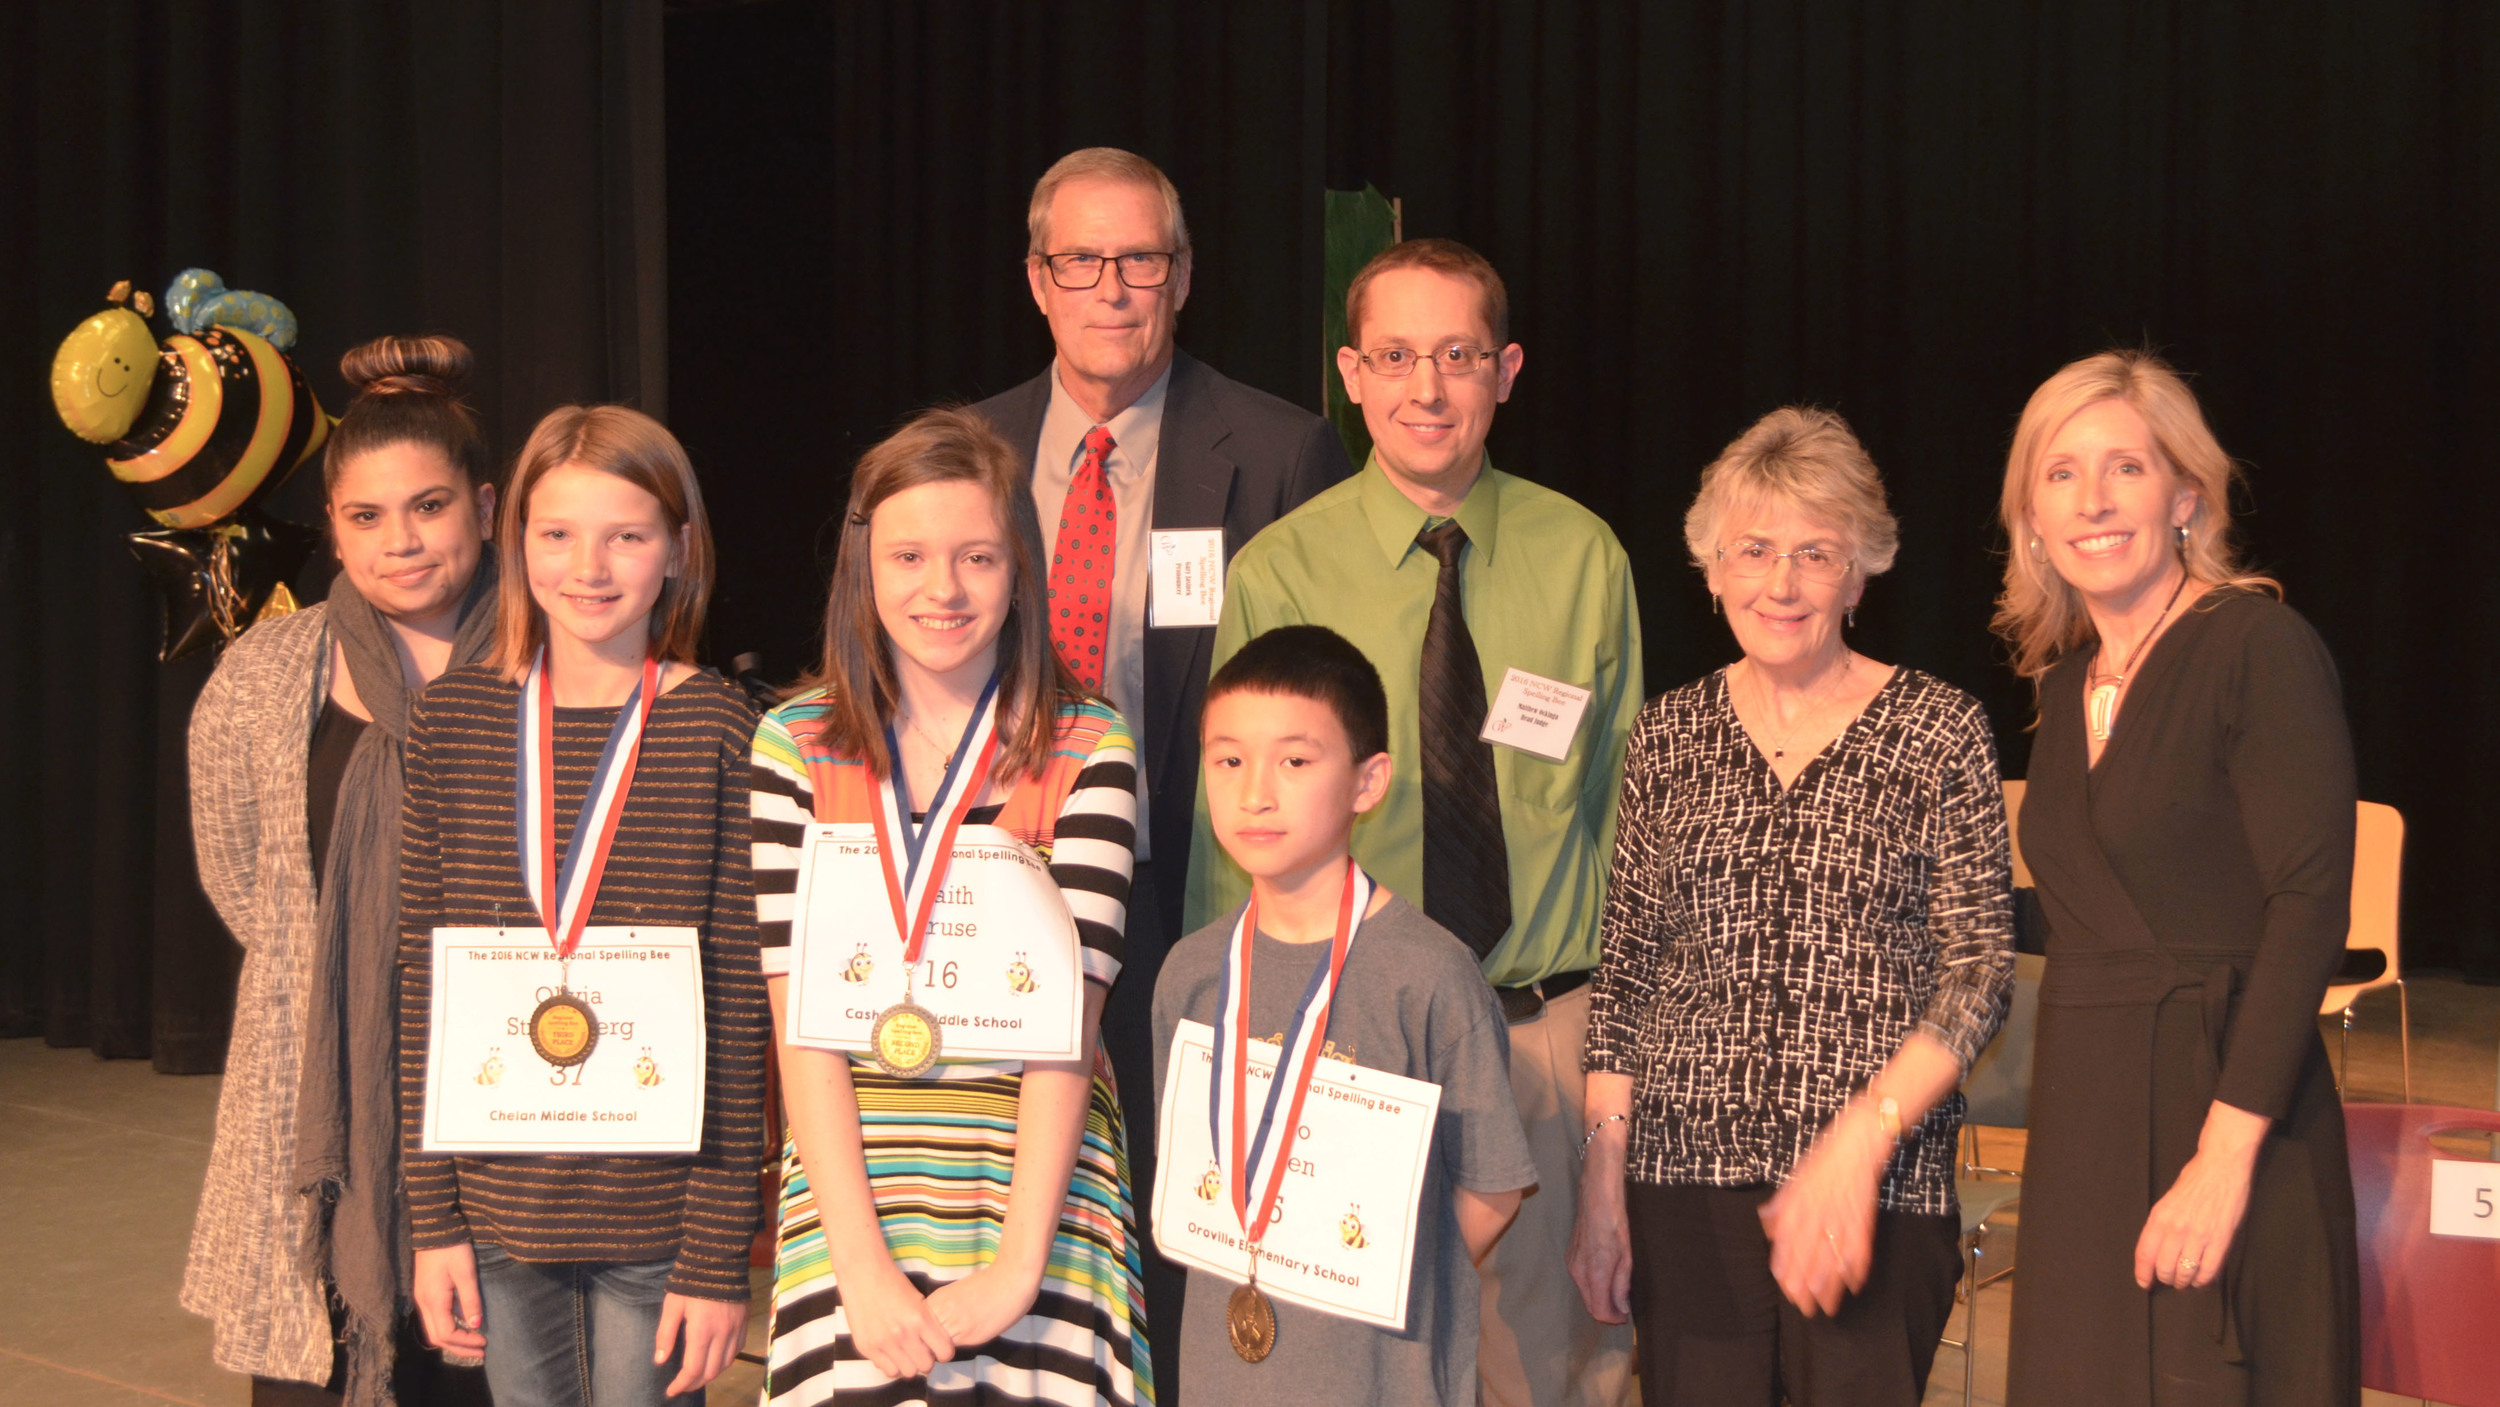 Students from right to left: Champion Leo Chen, 2nd place Faith Kruse and 3rd place Olivia Strandberg. Also shown are event officials Missy Raymond,  Gary Jasinek , Matthew Ockinga  and Geraldine Warner.